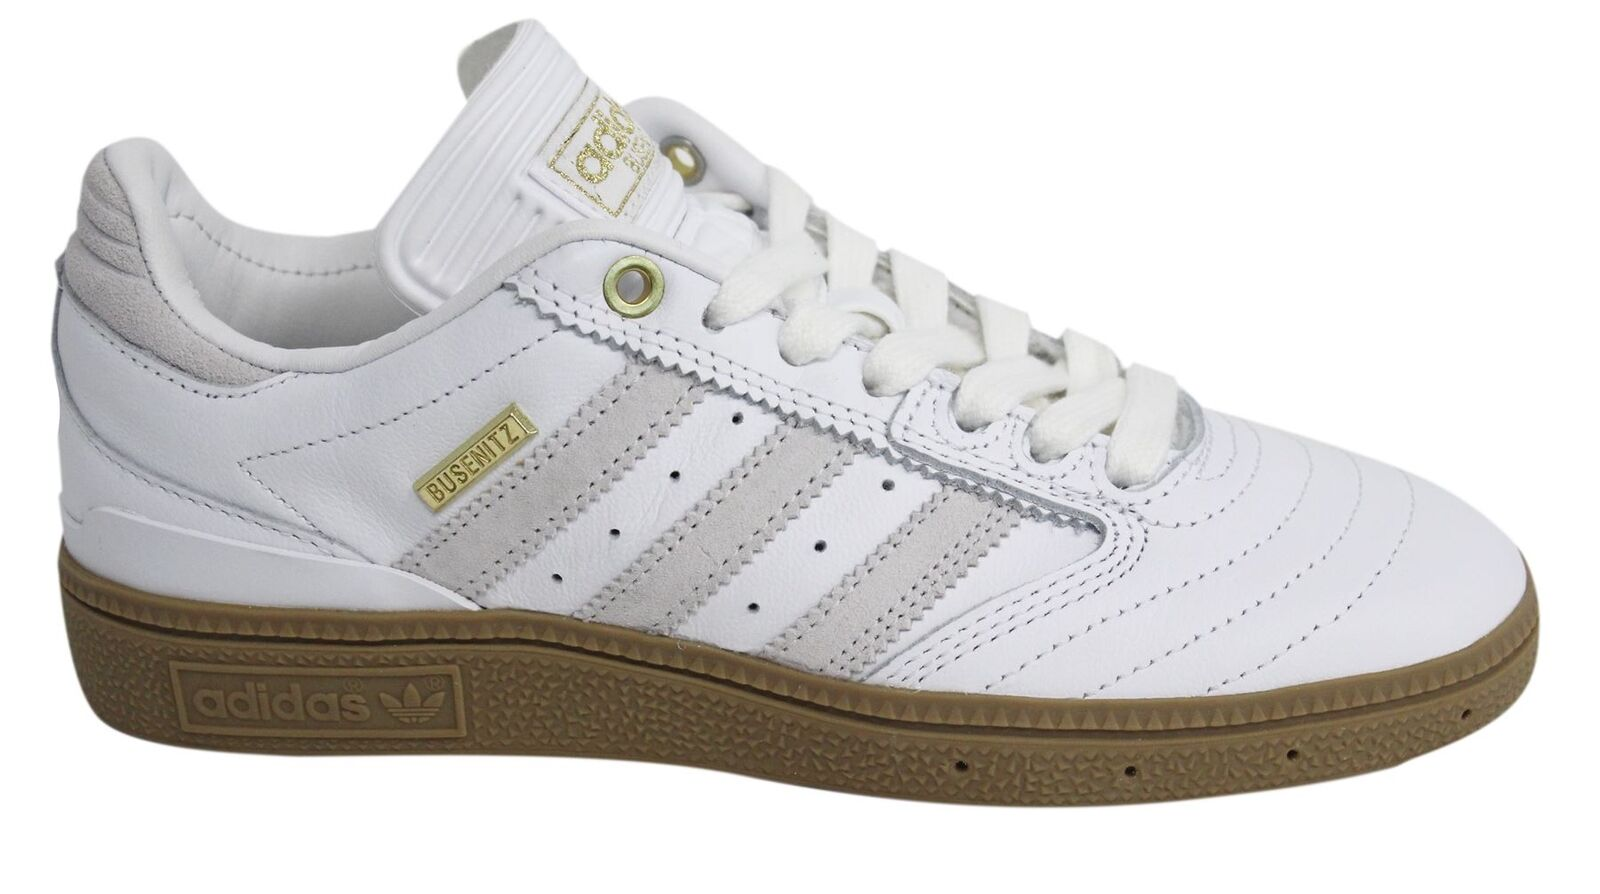 Adidas Busenitz 10 Yr Anniversary Lace Up White Leather Skateboarding Trainers Cheap and beautiful fashion